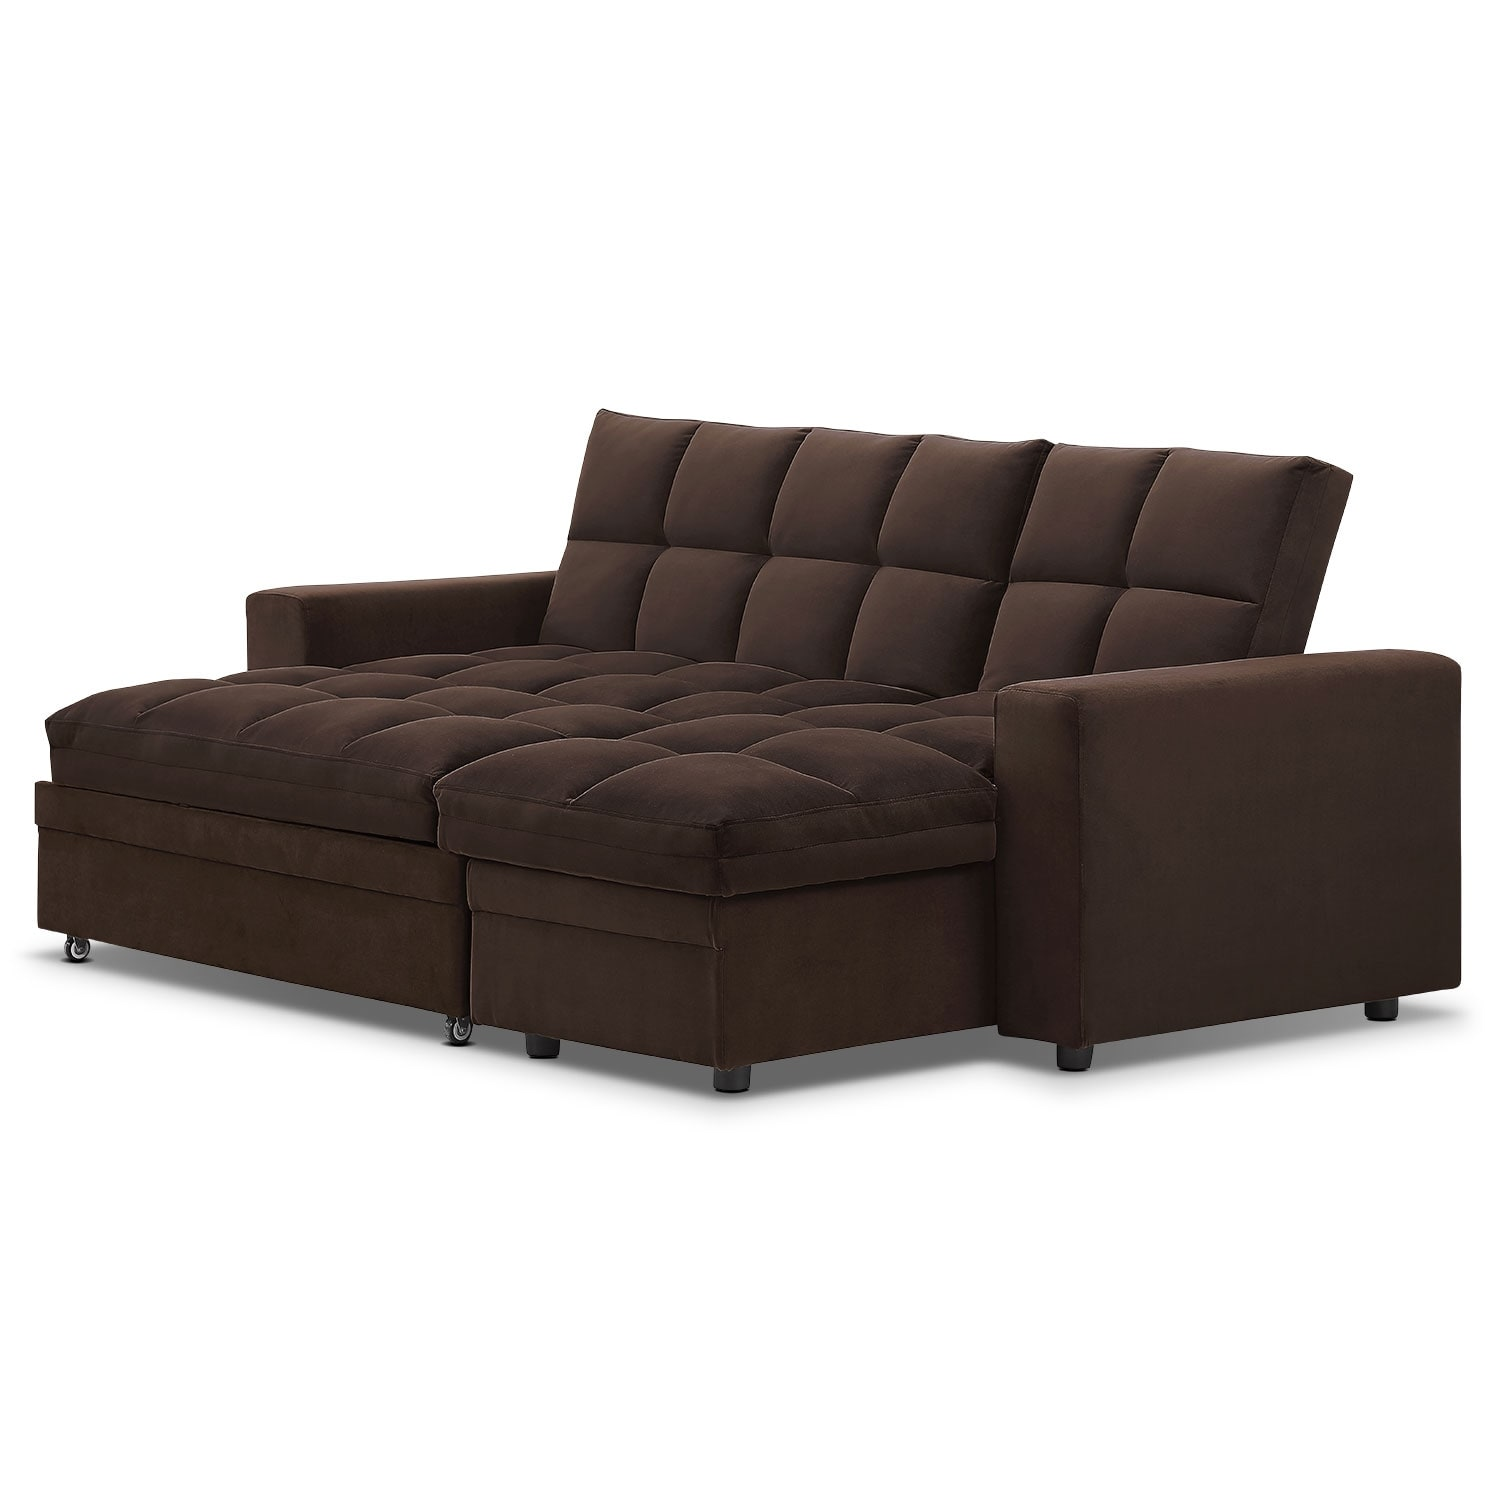 Metro chaise sofa bed with storage brown american for Duke sectional sofa bed w storage